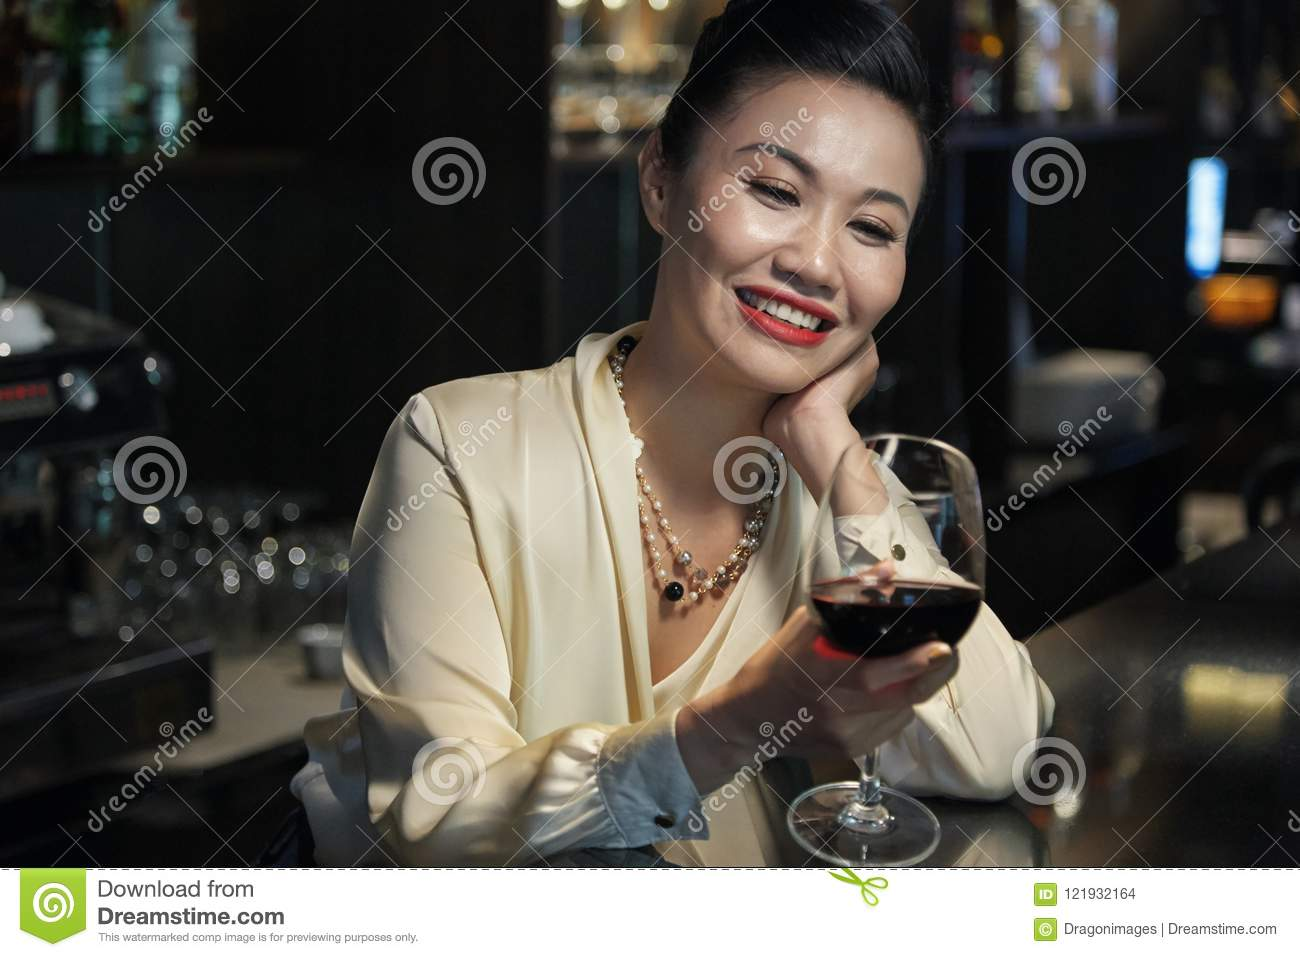 Happy Asian female looking at wine glass